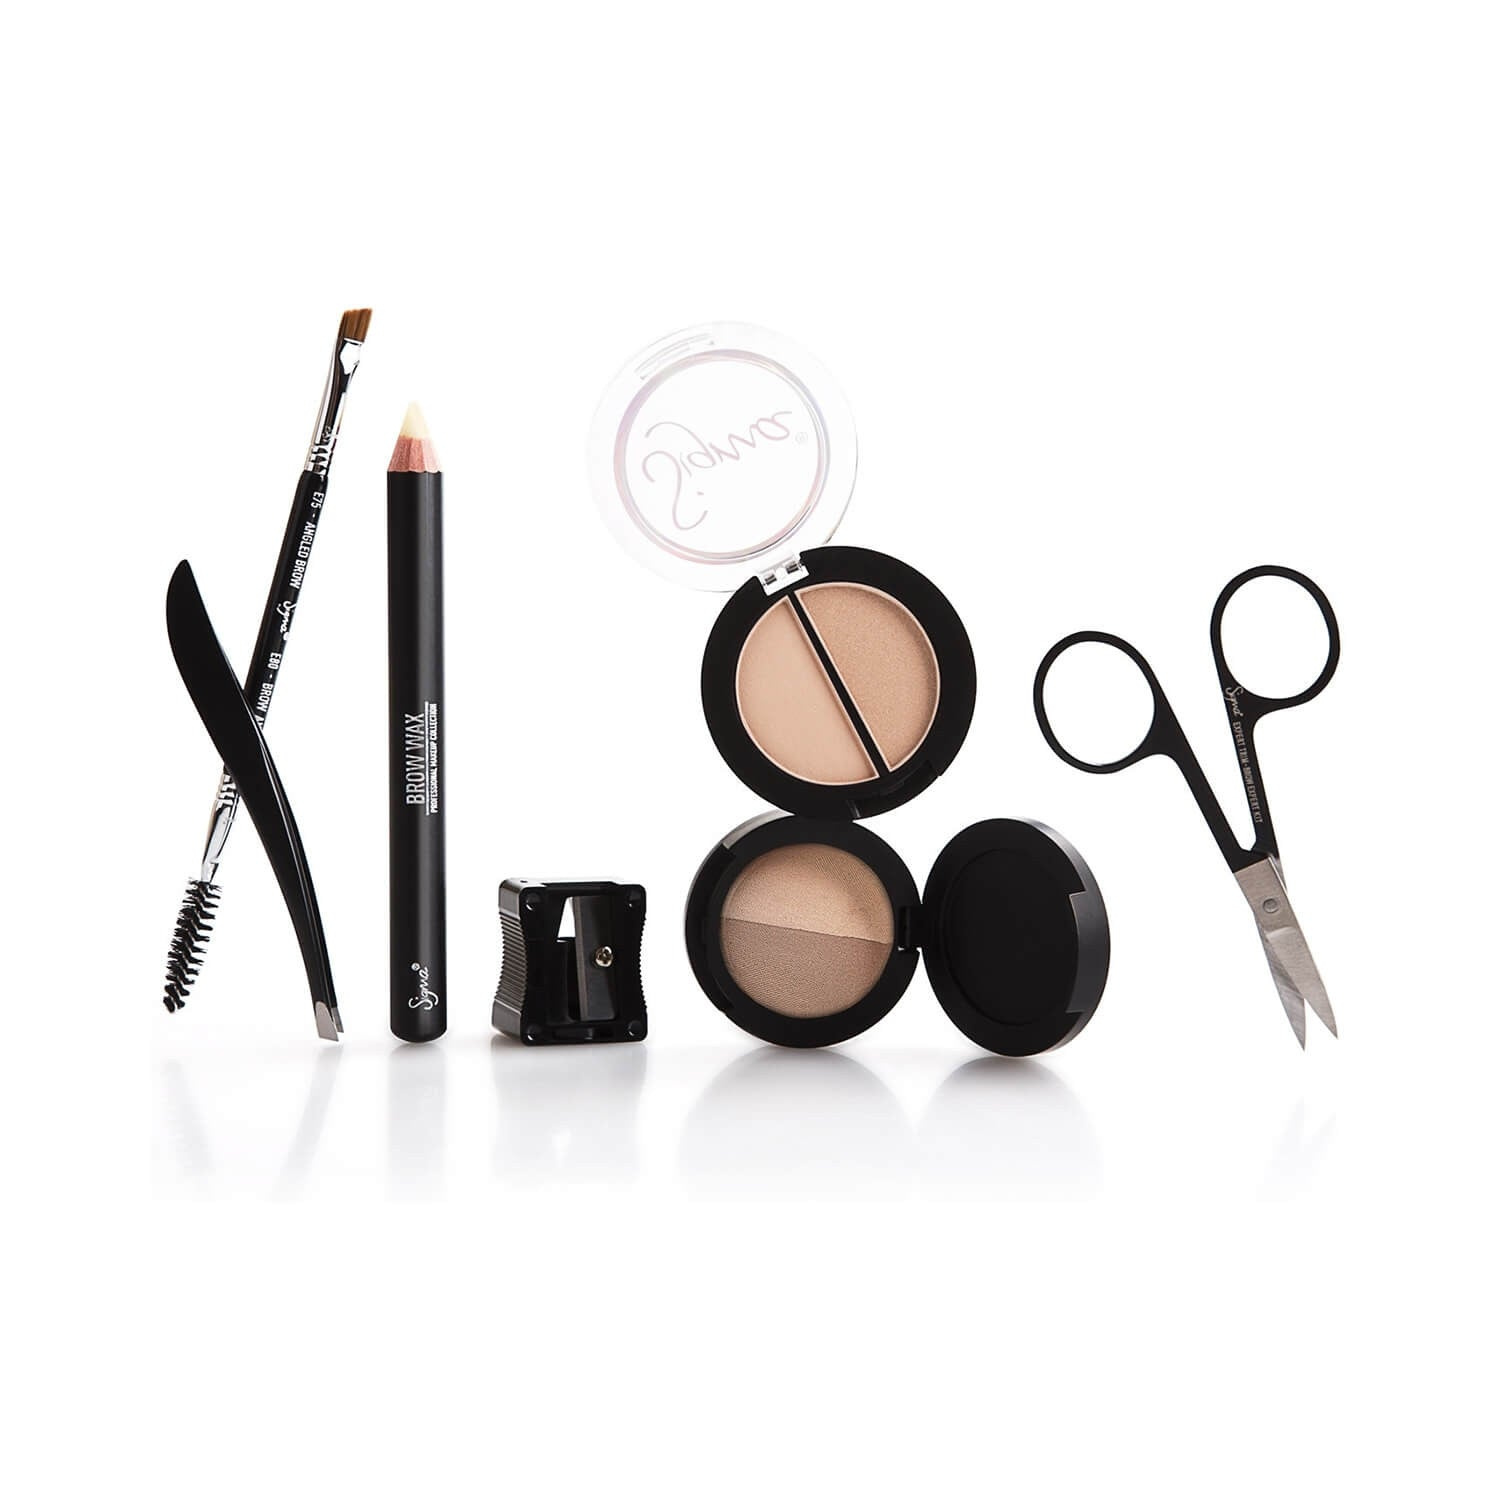 Sigma Beauty Brow Expert Kit